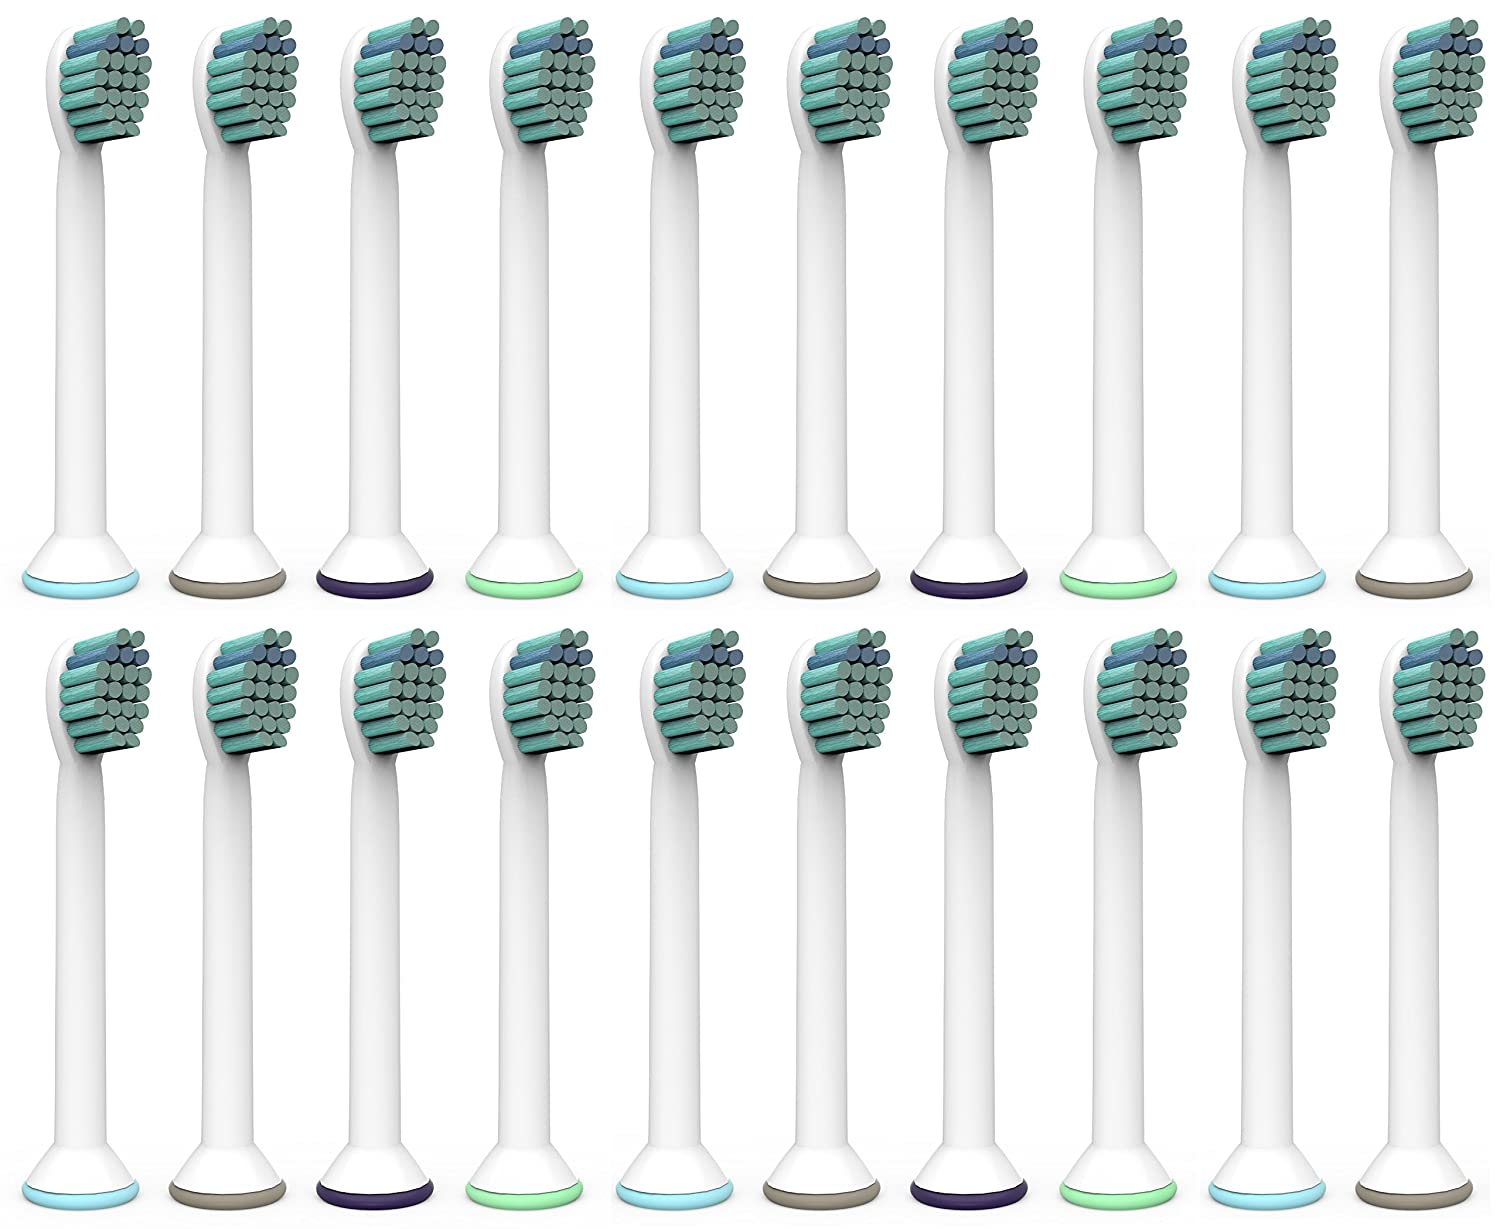 Oliver James Compact Replacement Toothbrush Heads 20 Pack Compatible with Philips Sonicare ProResults DiamondClean EasyClean FlexCare HealthyWhite HydroClean Power Up Plaque Control Plaque Defence Gum Care